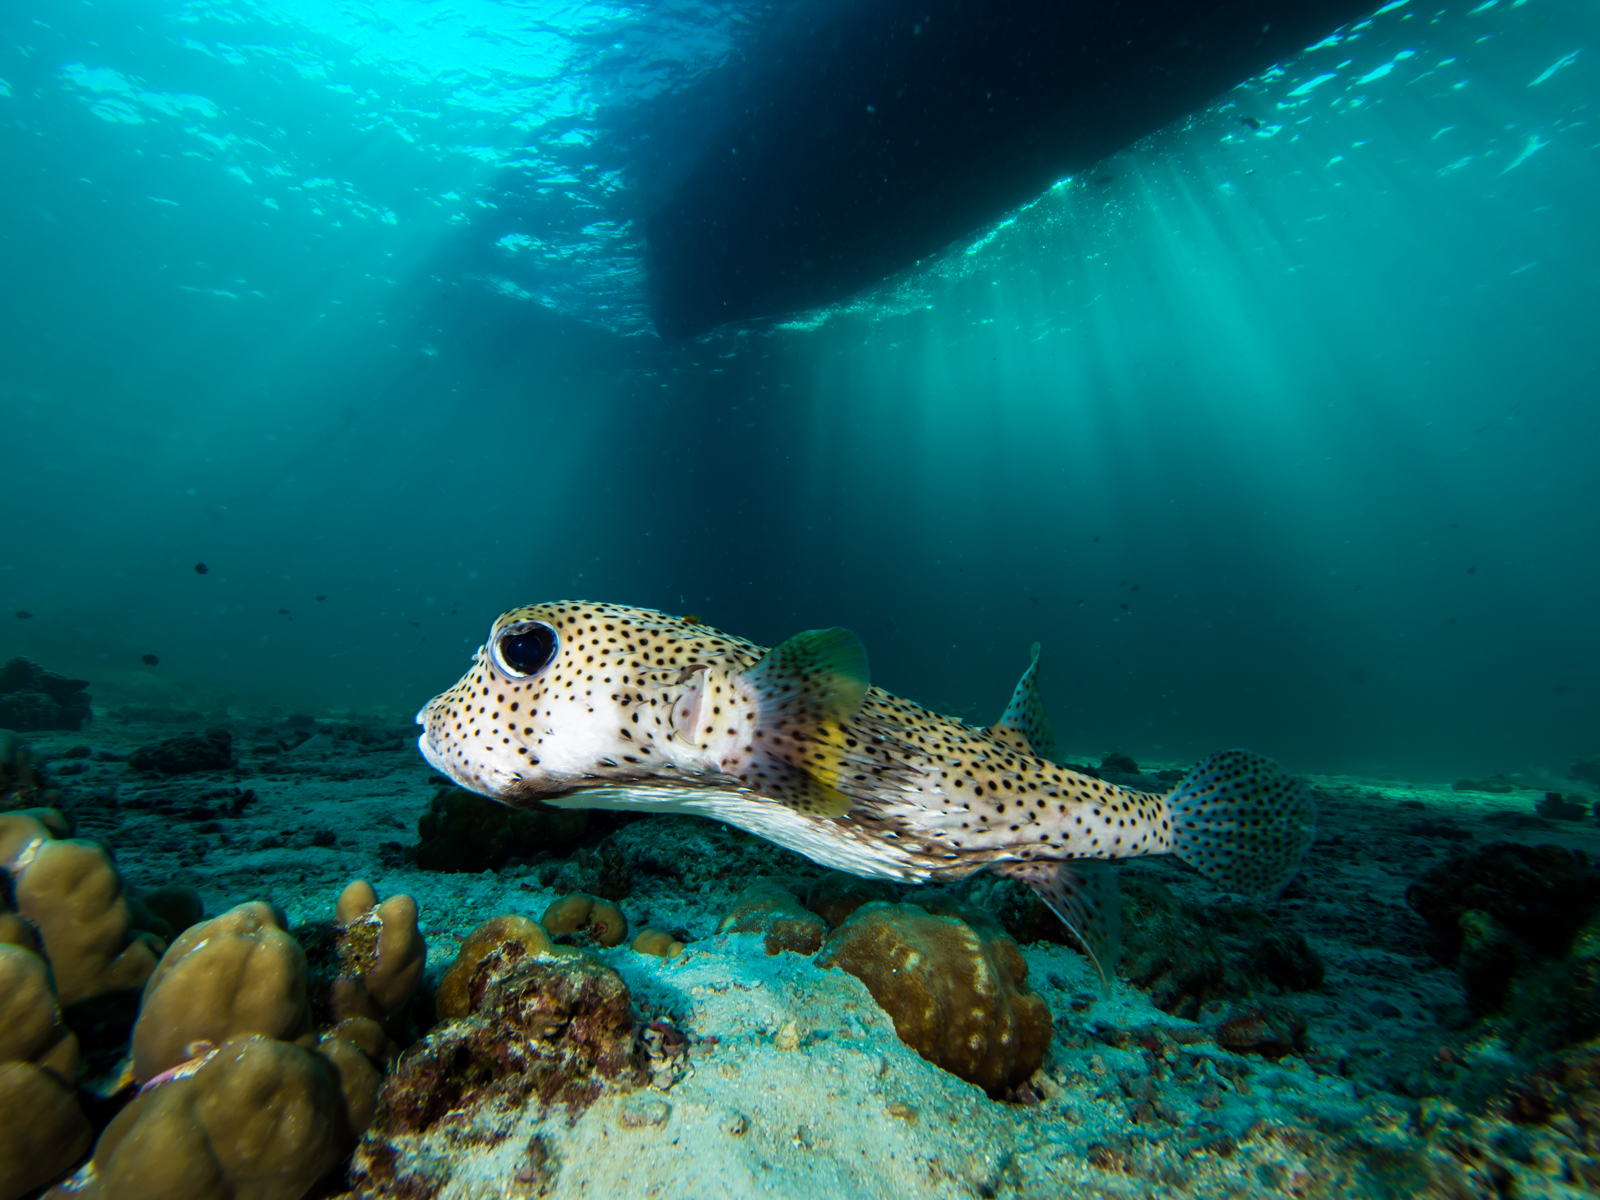 Purcupine pufferfish hangin out underneith thediveboat